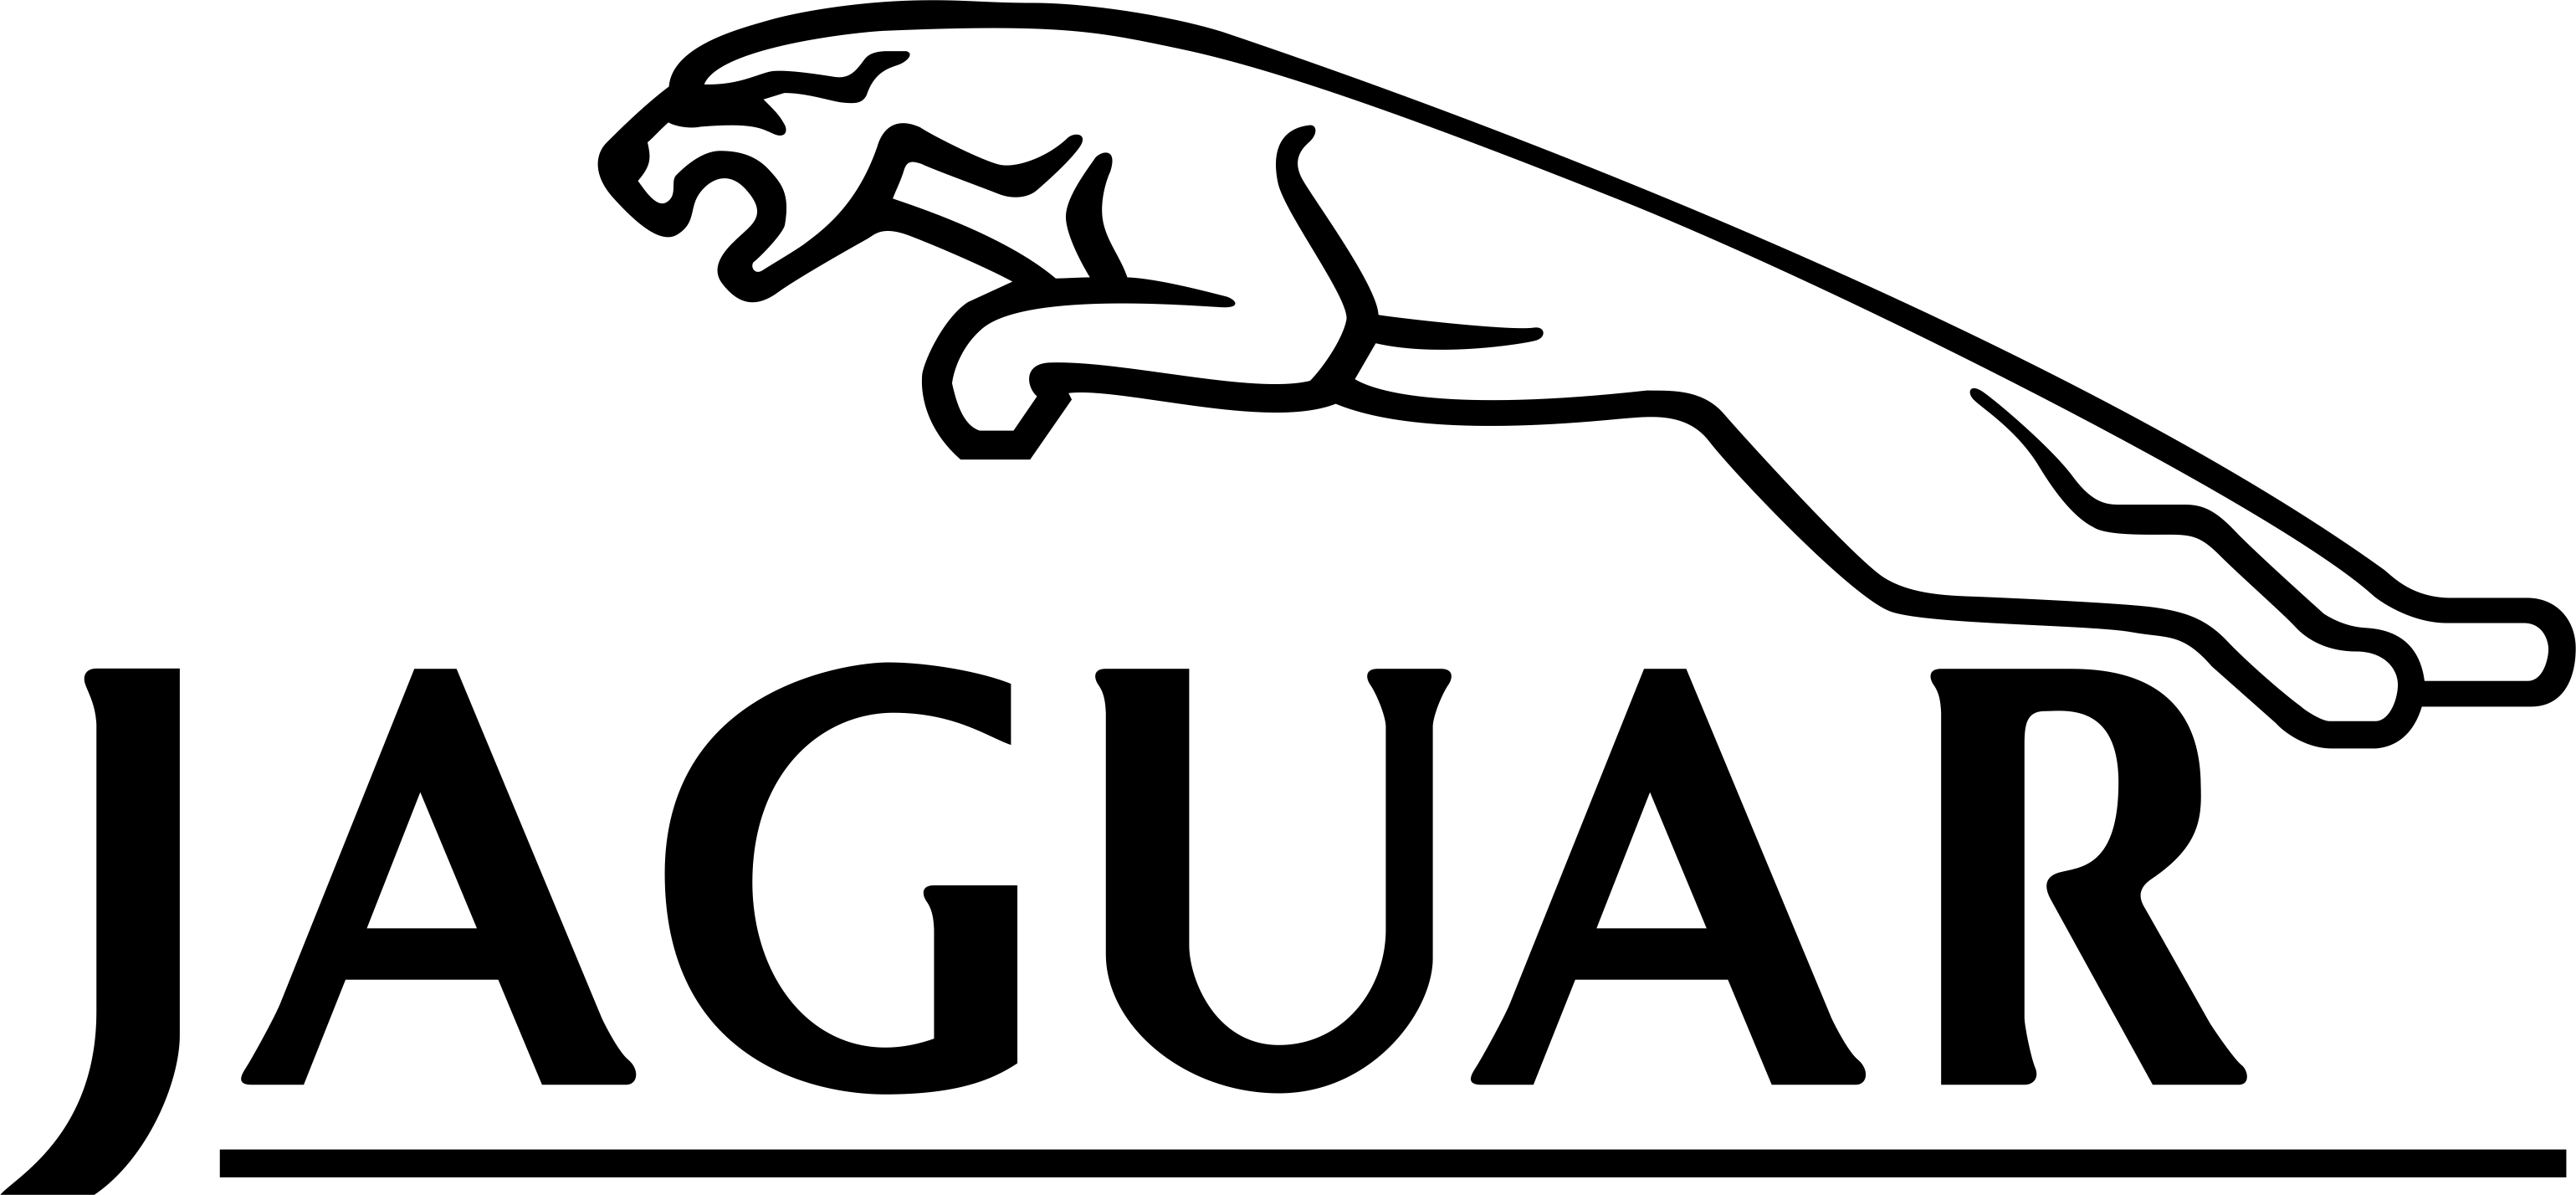 jaguar logo vector coreldraw vector cdr file free download 3axis co rh 3axis co jaguar logo vector free download jaguar free vector